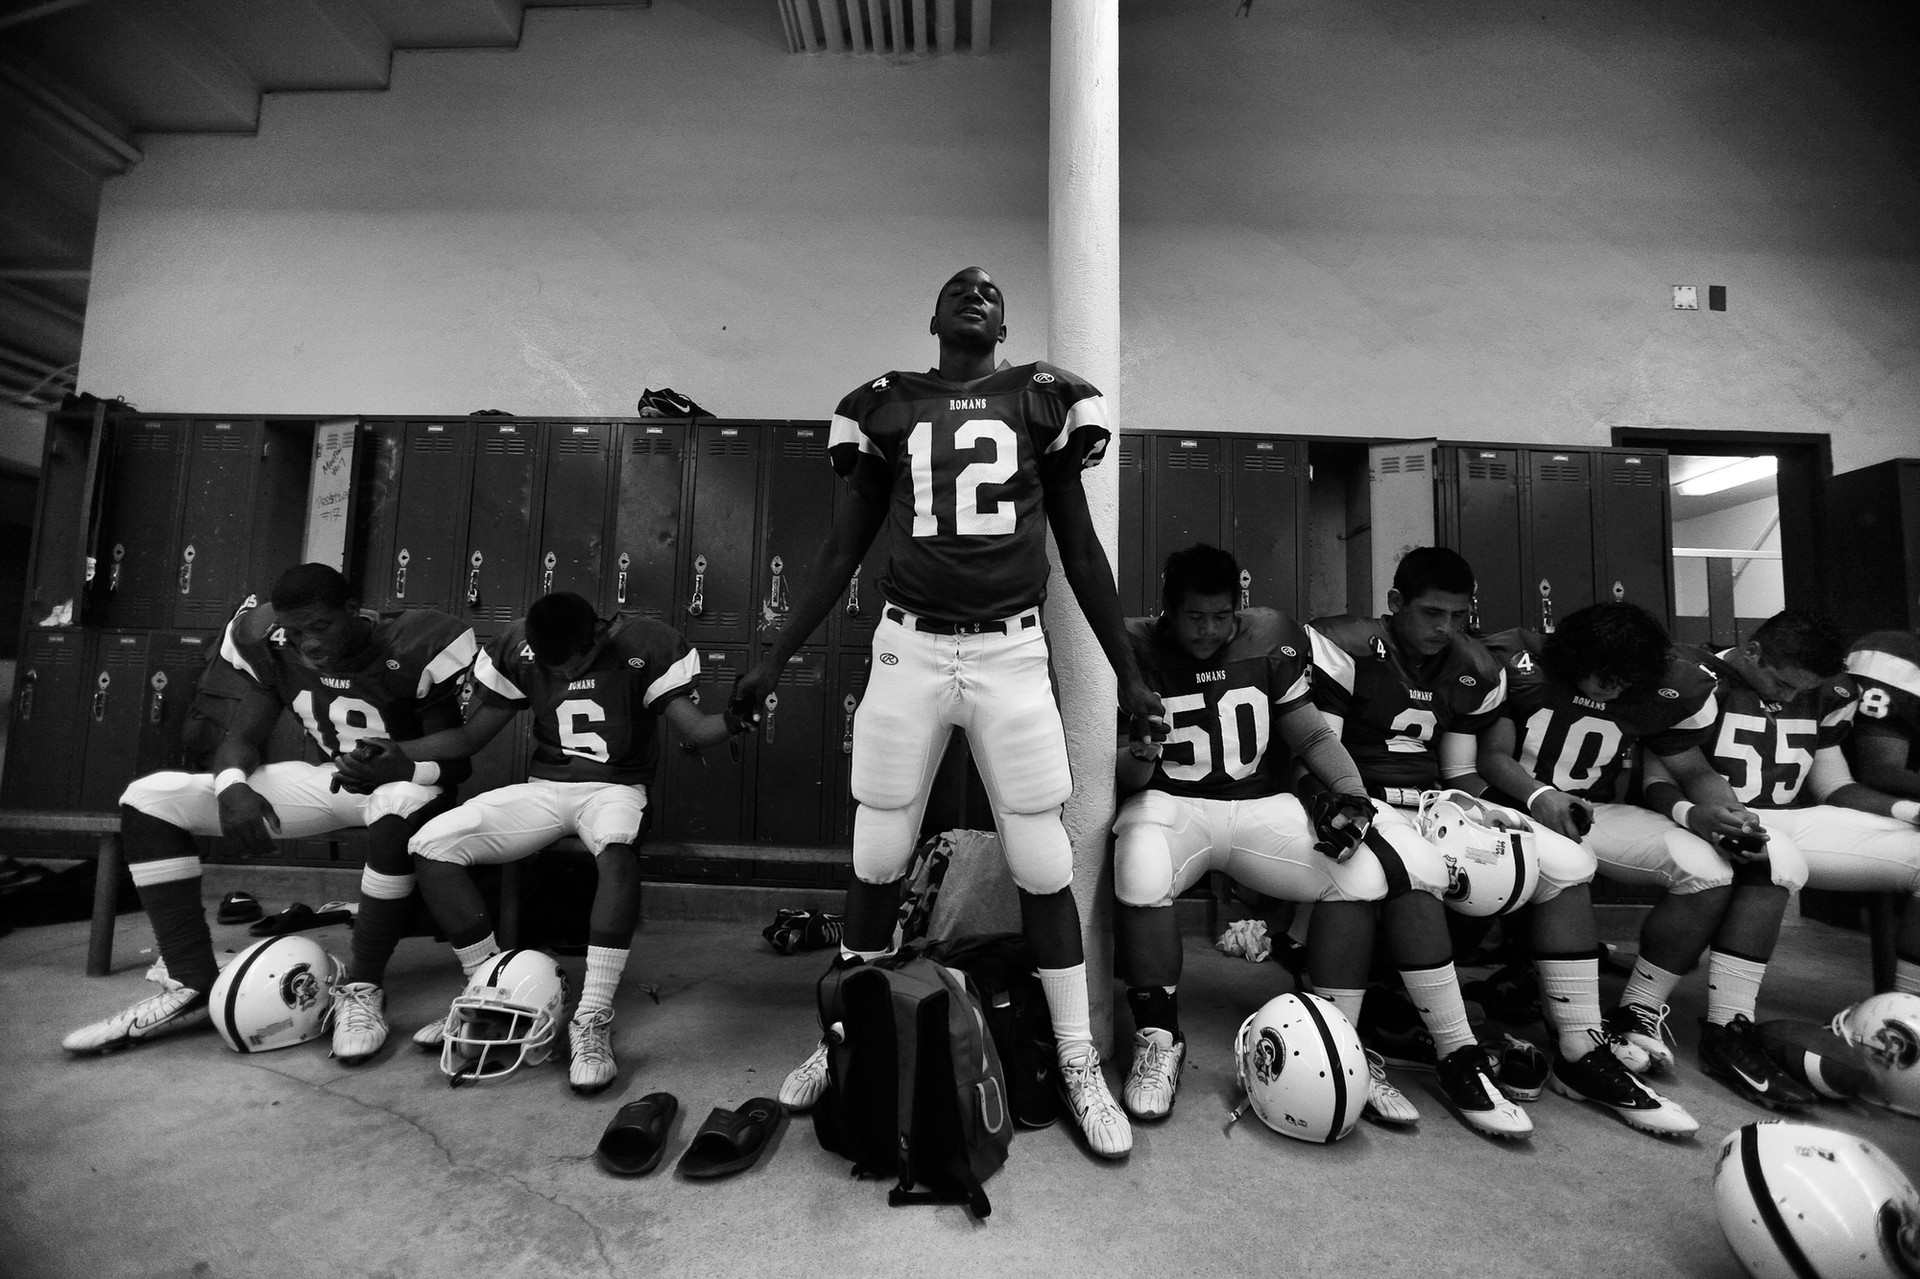 "Je'Don Lasley, a junior receiver at Los Angeles High, chokes up as he delivers a pre-game prayer in the Romans' locker room in the team's first home game since Jas was killed. Jas used to lead the prayers. ""I say whatever comes and hope we're all right,"" Lasley said. The team's coach, Hardy Williams, said athletes used to be largely excluded from gang violence. Yet his team almost lost a second player, Orlando Isles, who was struck in the right calf in a drive-by shooting. A friend standing next to him, Chris Taylor, died after being shot twice in the head. ""At one time athletes were looked at as pretty prominent, even on the high school level,"" Williams said. ""Gang members now, maybe it's like a notch in their belt or something."""